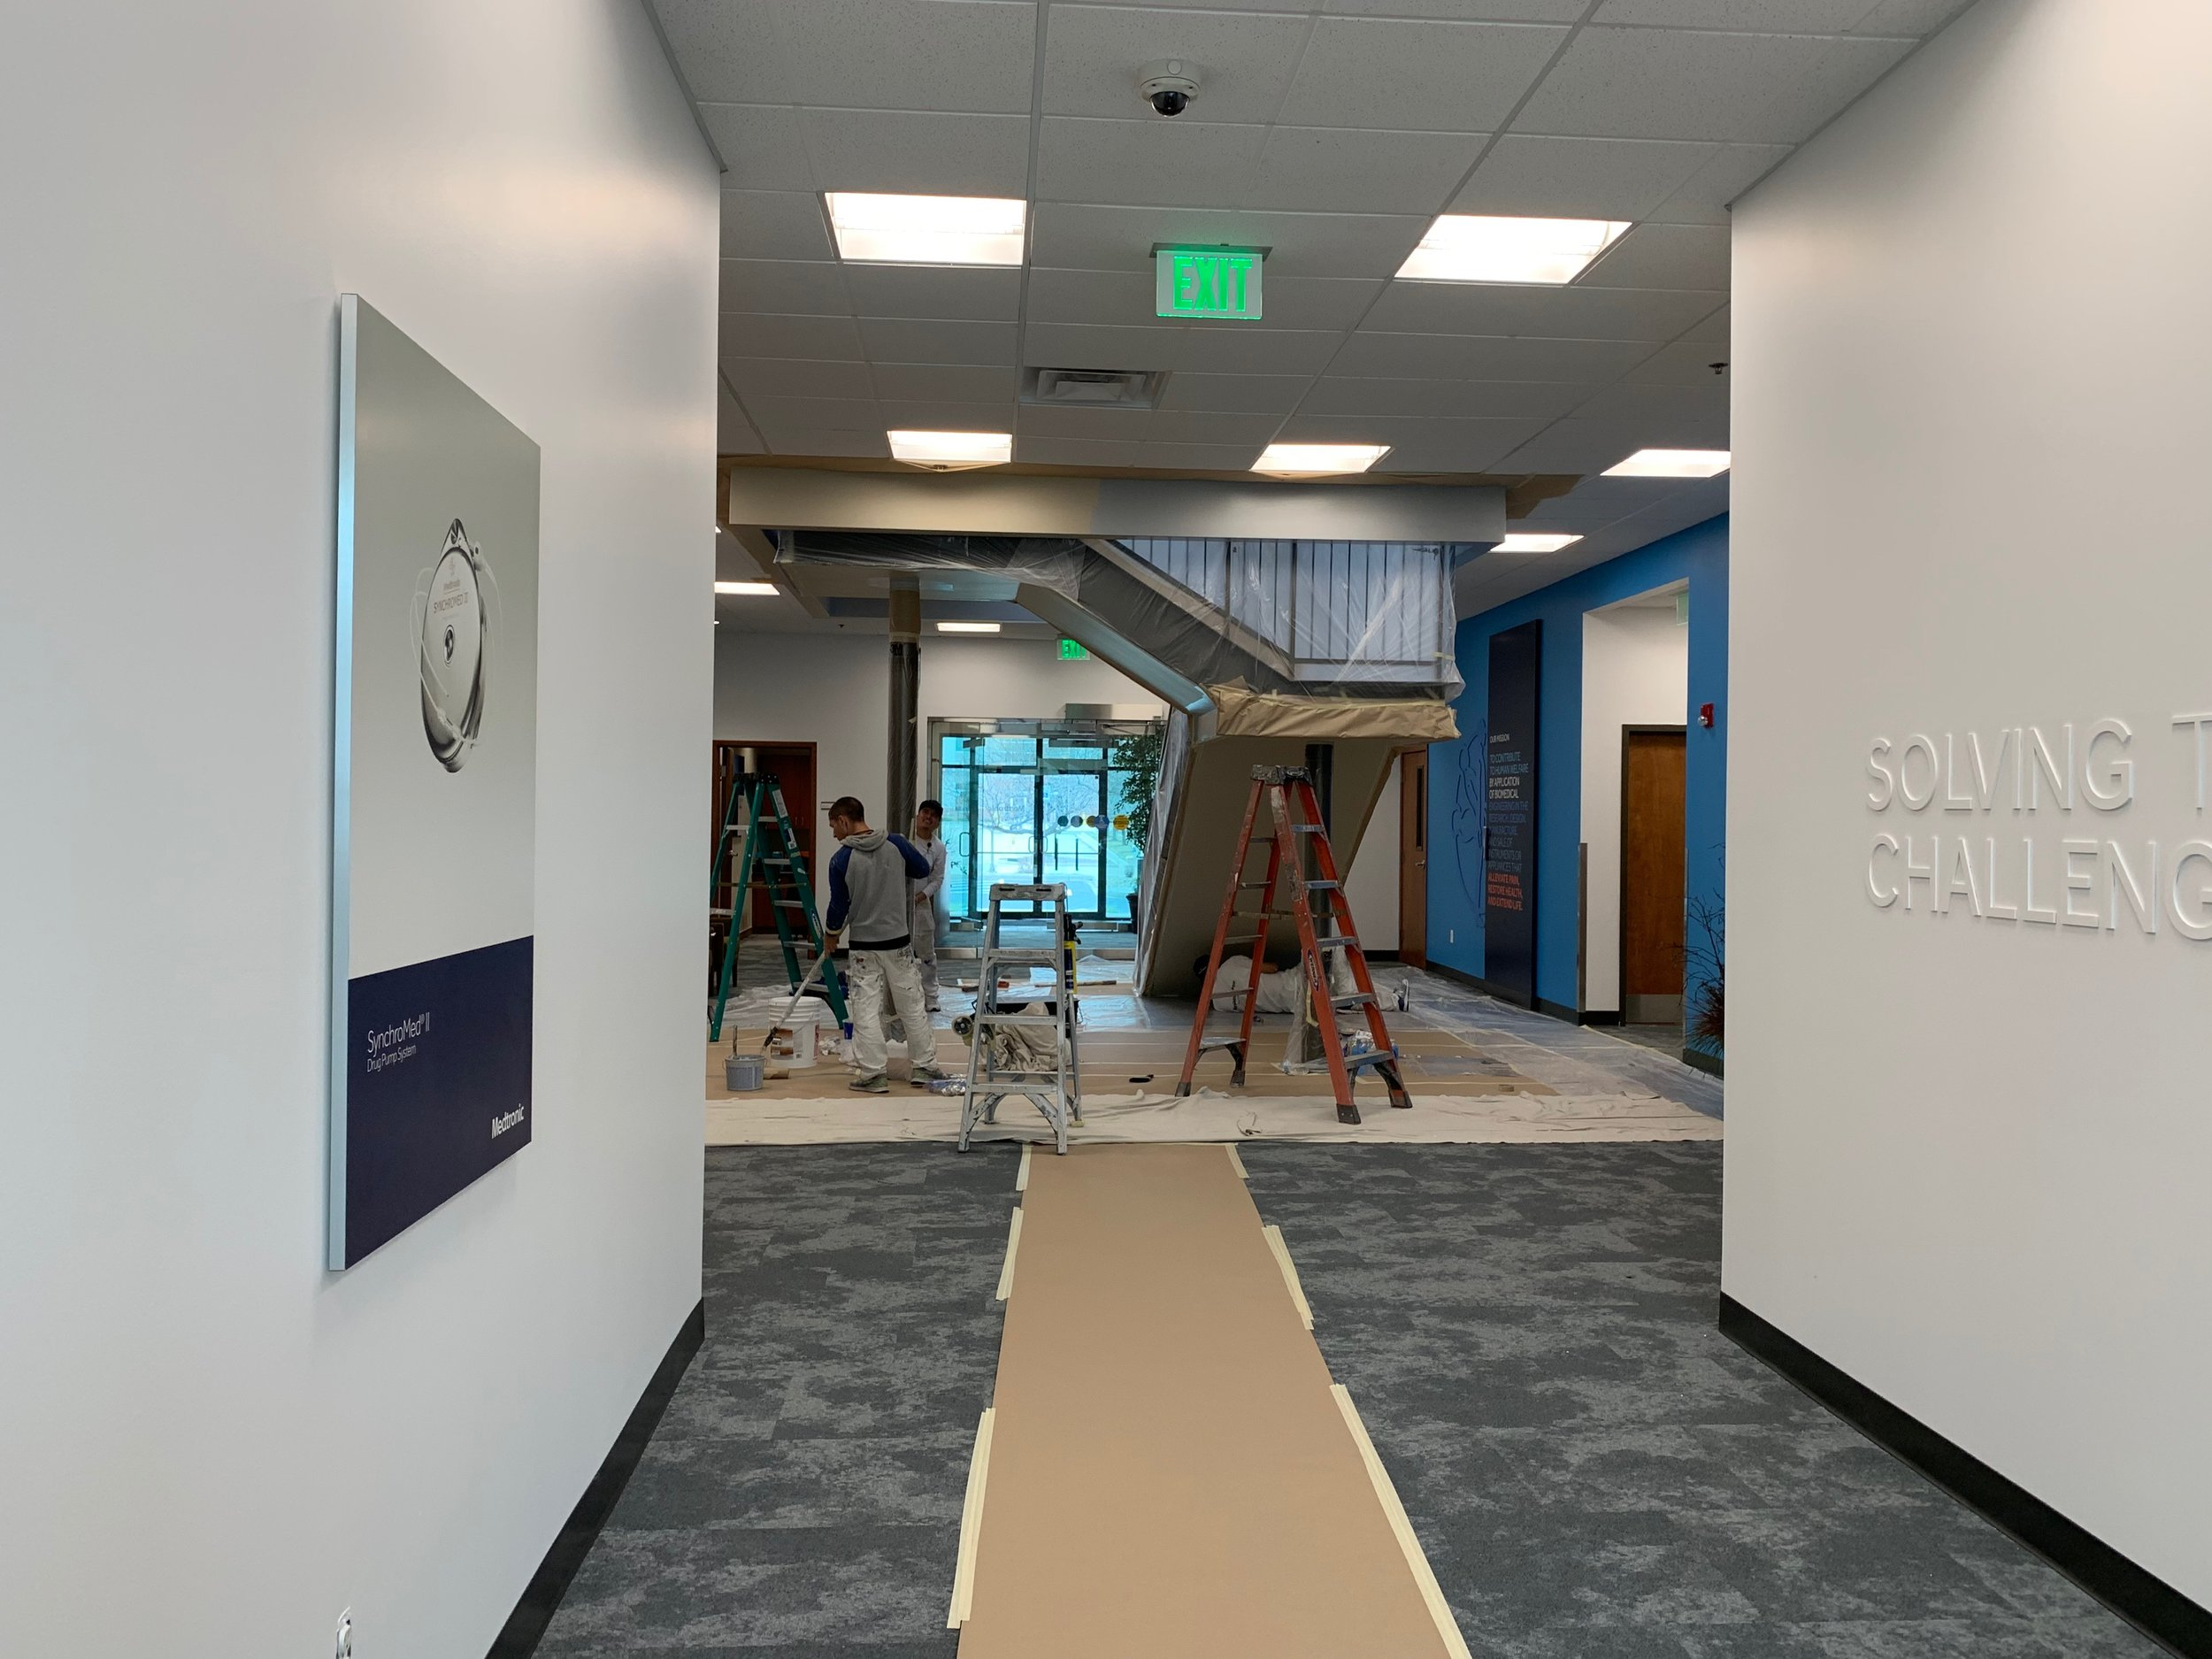 Medtronic building three first floor and core stairwell 4-27-19 #1.JPG